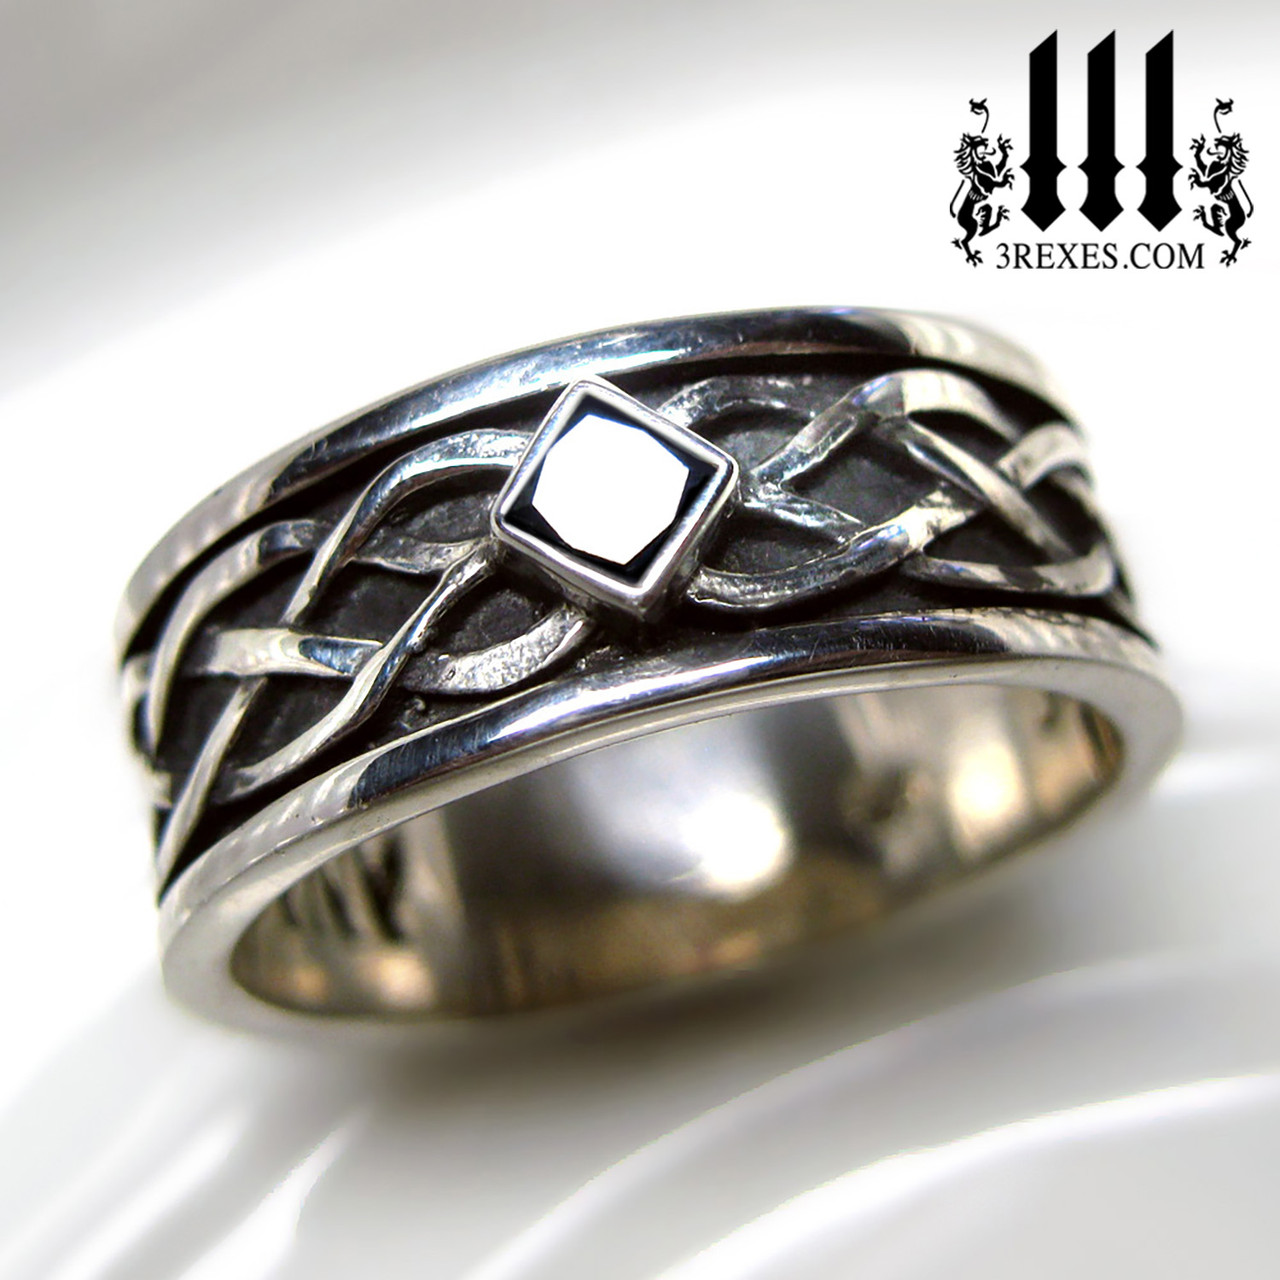 It is just a graphic of Celtic Knot Silver Soul Ring Gothic Wedding Band